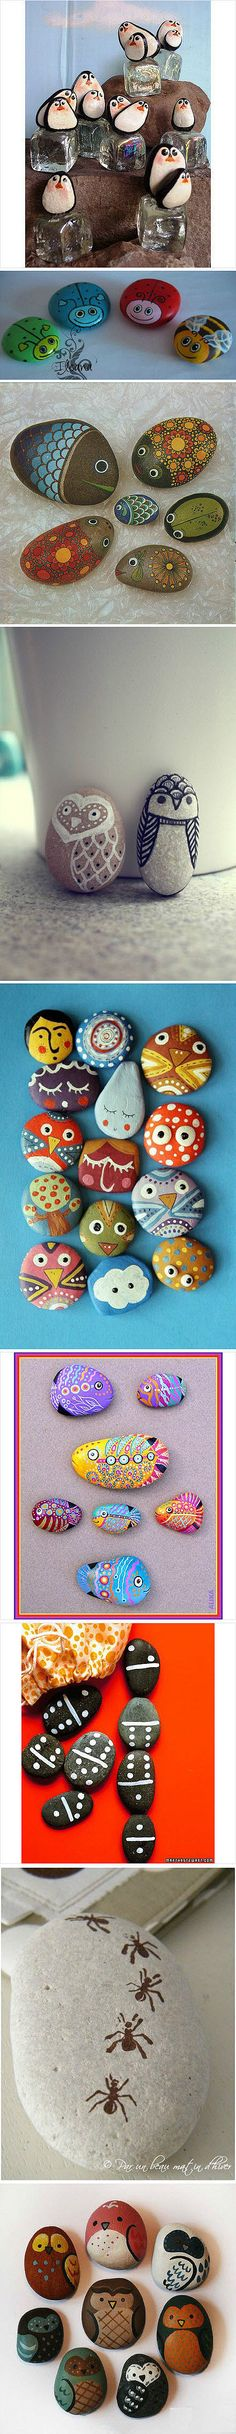 cute painted stones